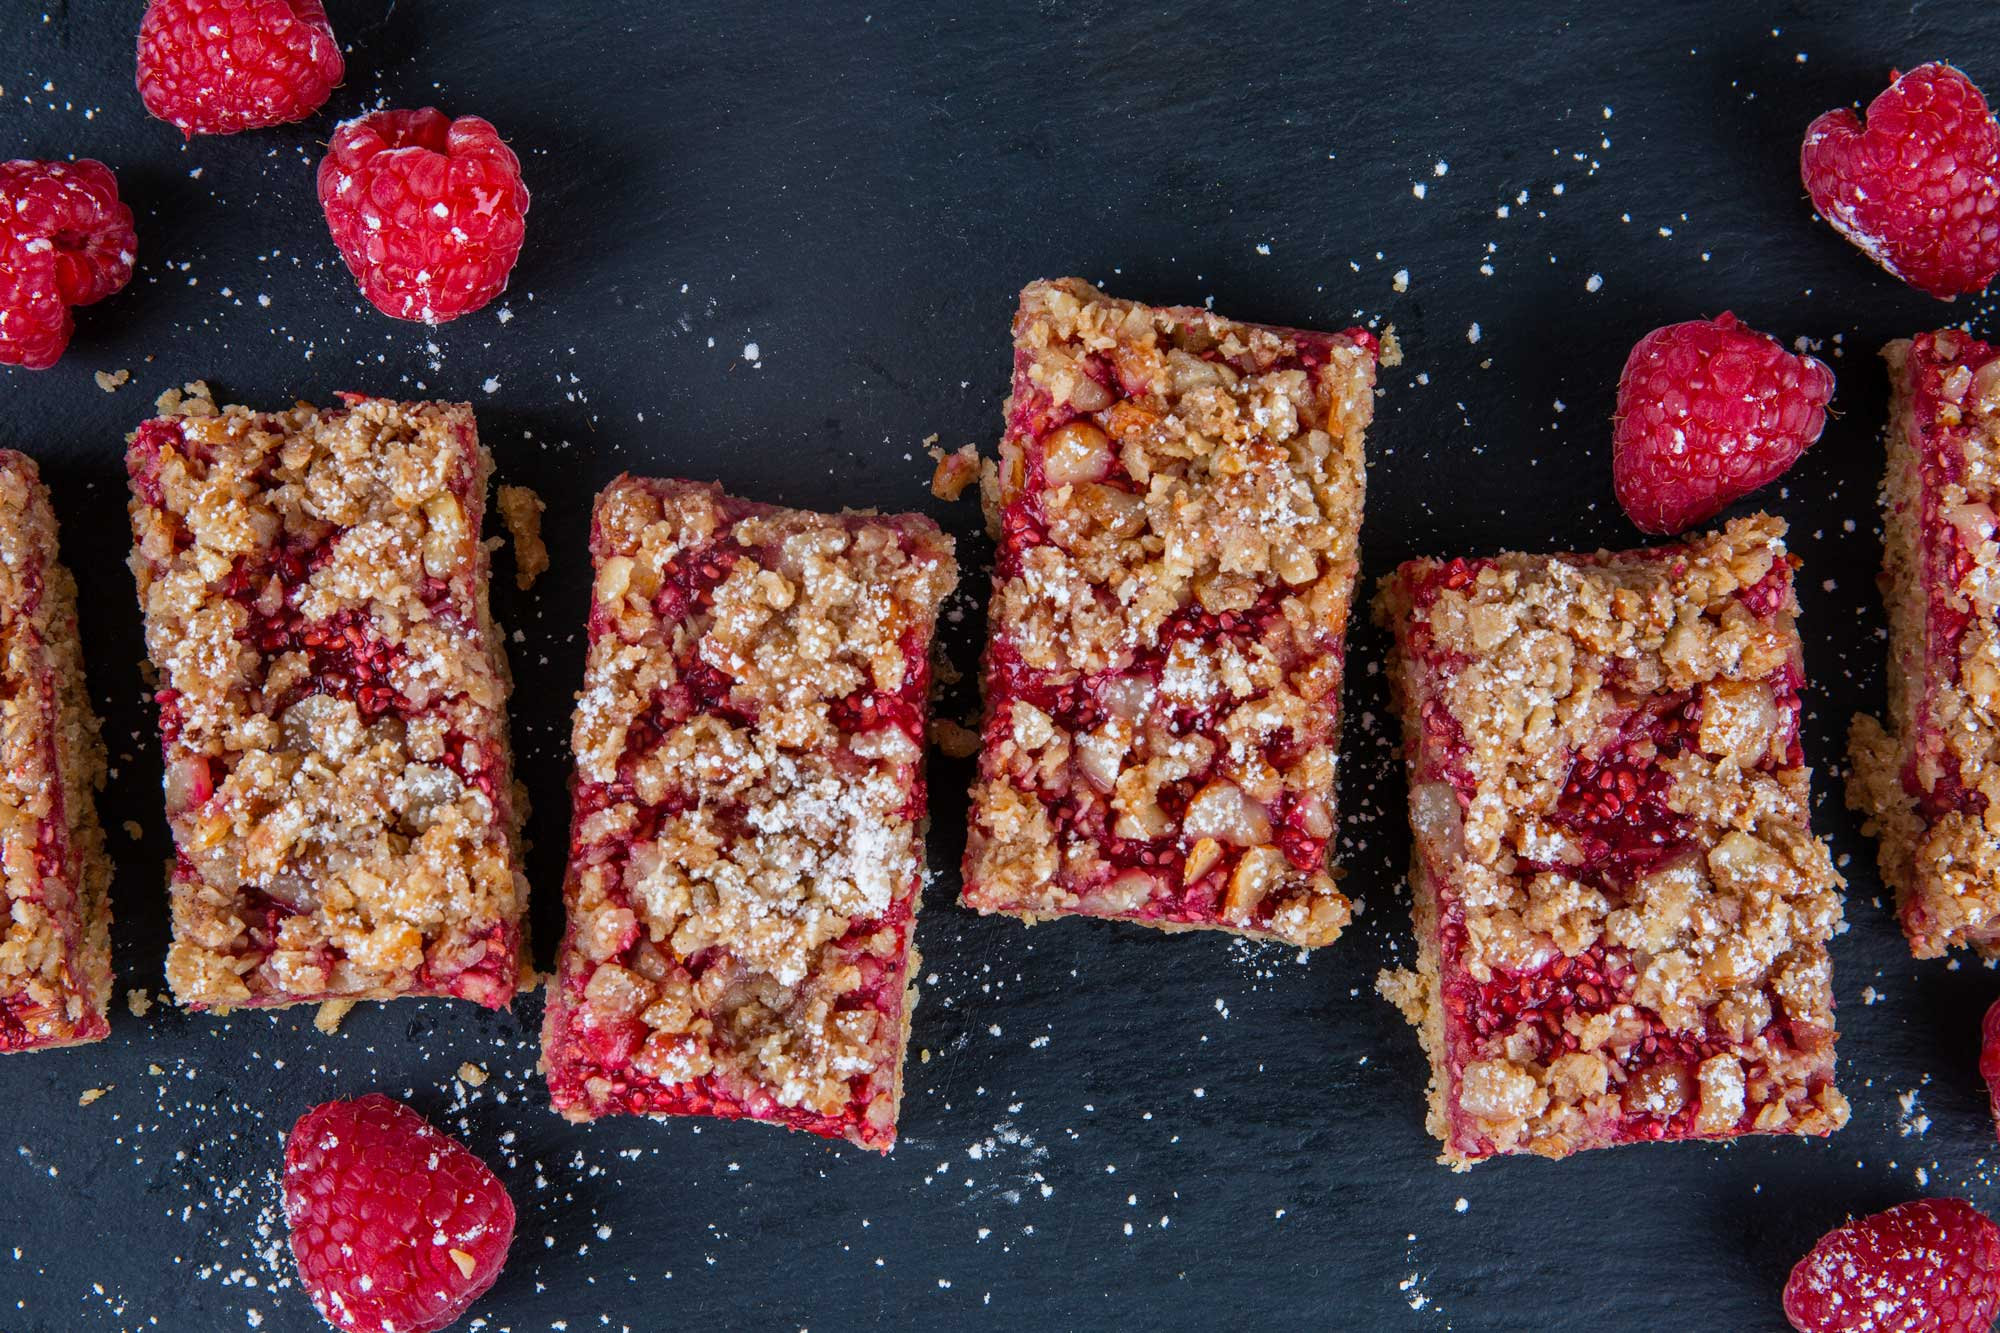 Raspberry Chia Oatmeal Bars